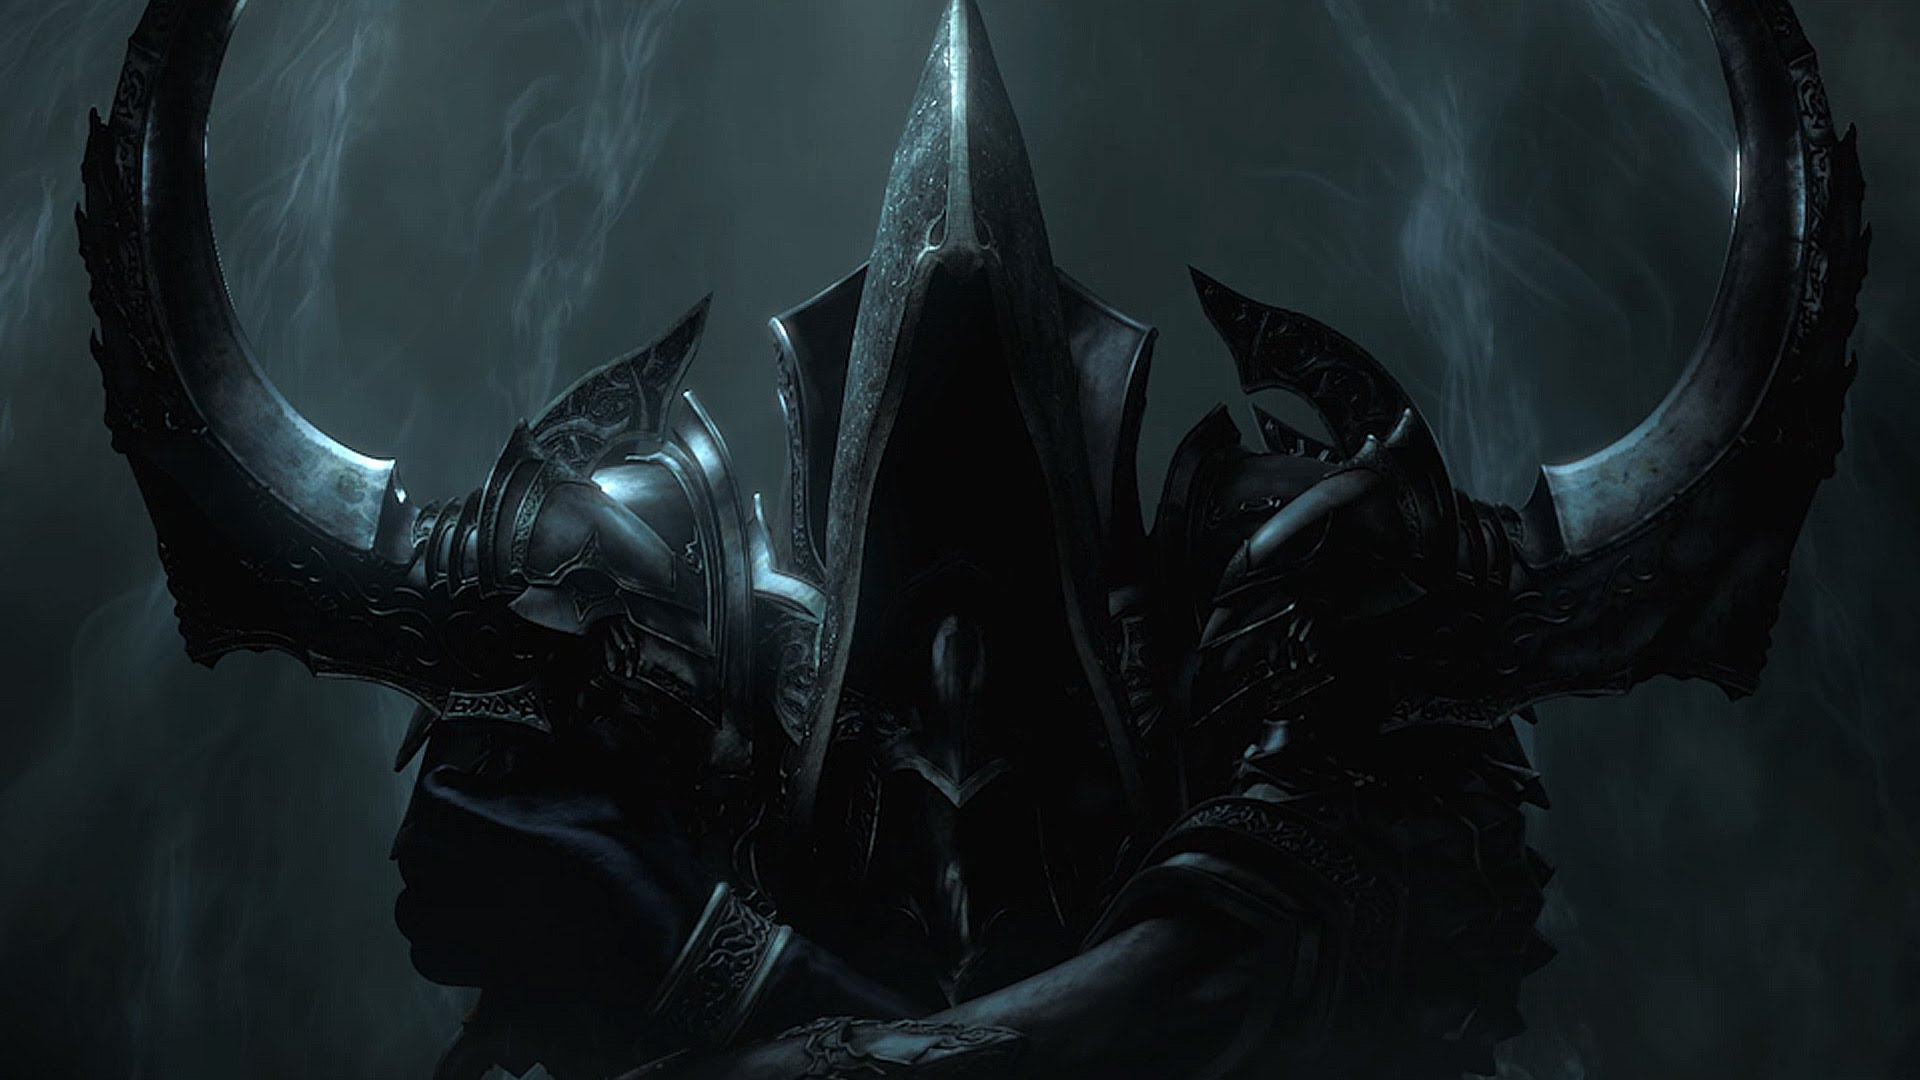 Who is Malthael?